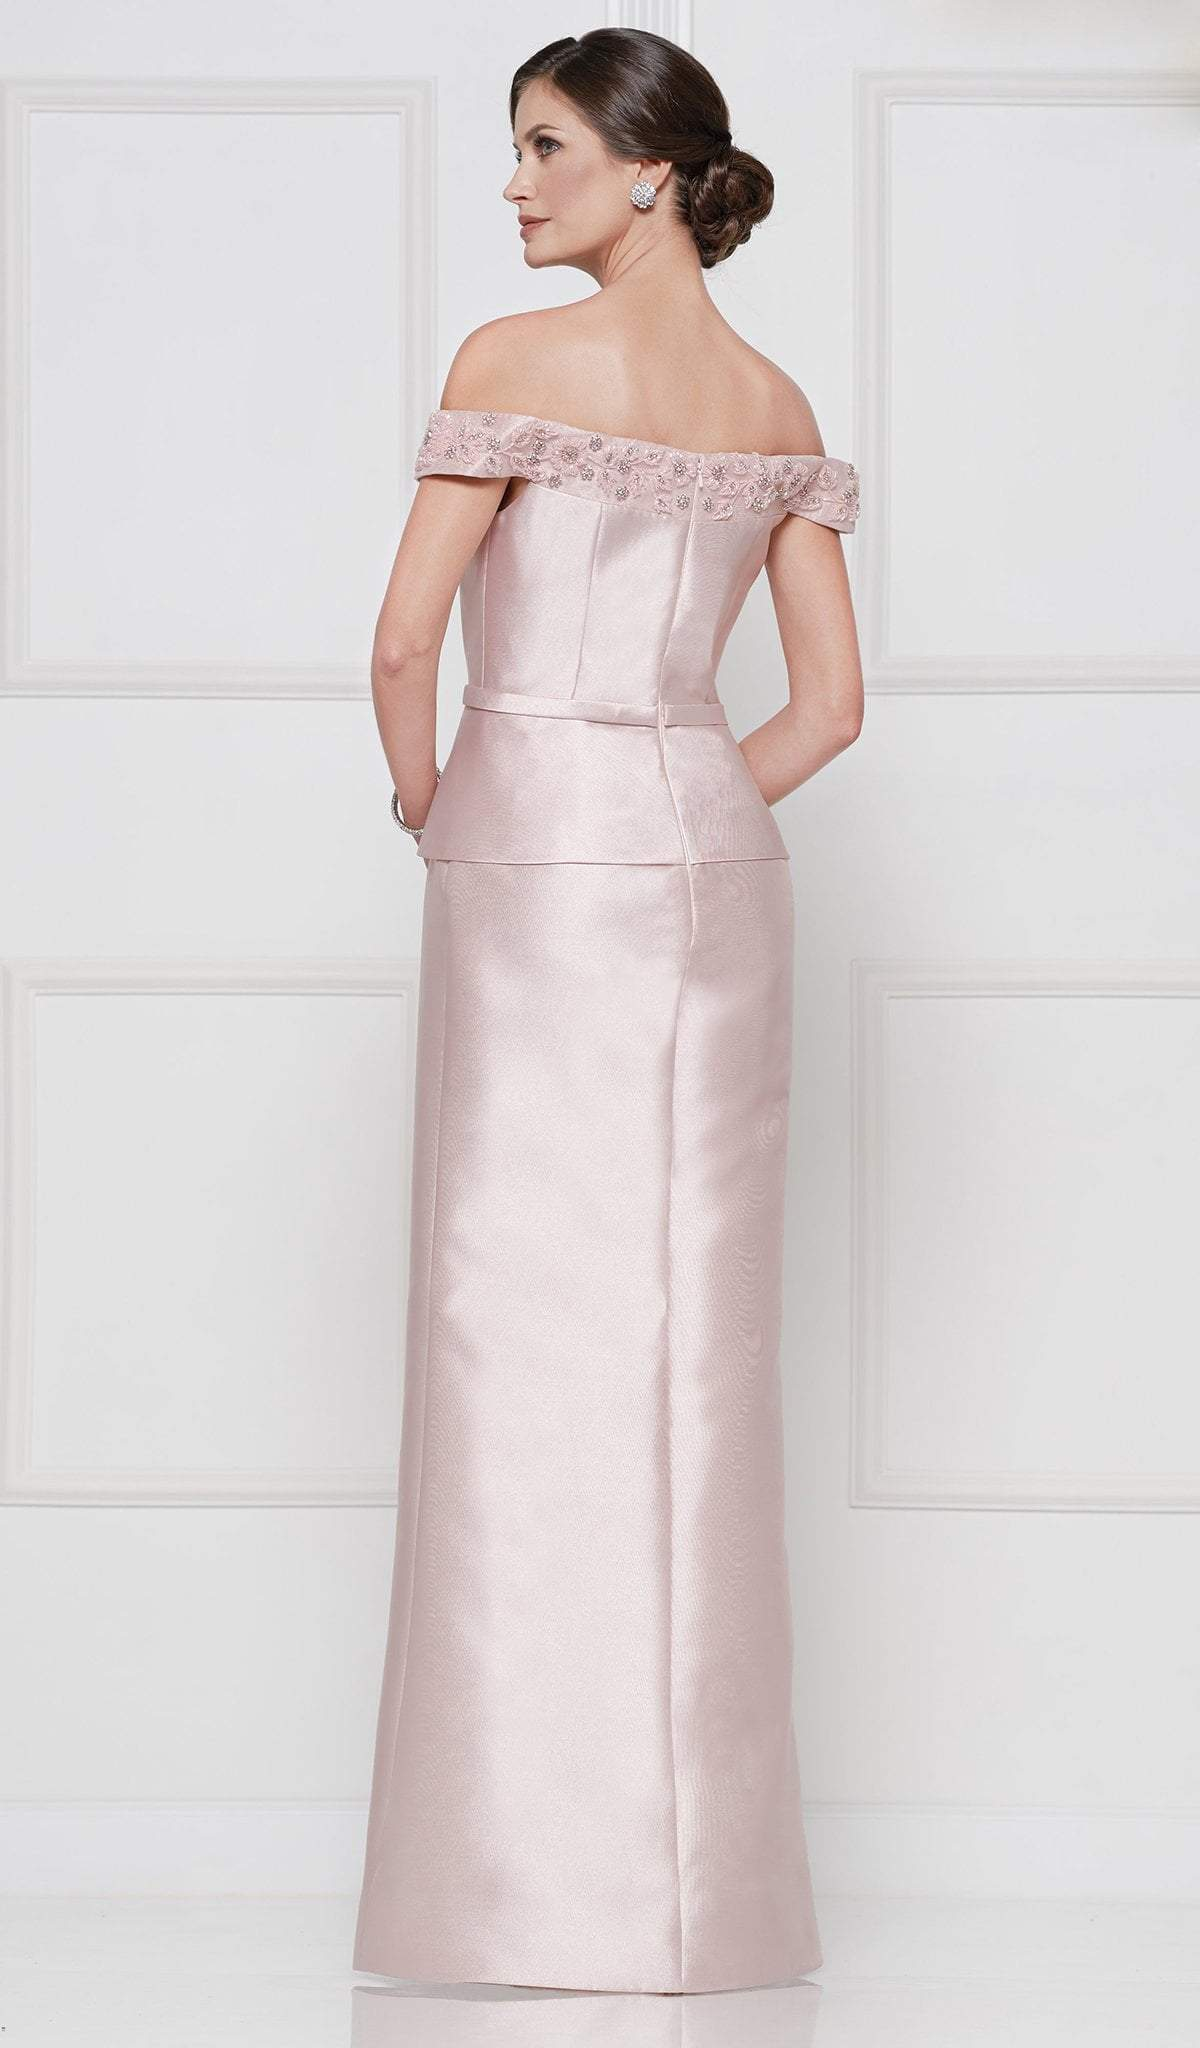 Rina Di Montella - RD2643 Floral Beaded Off Shoulder Peplum Gown In Pink